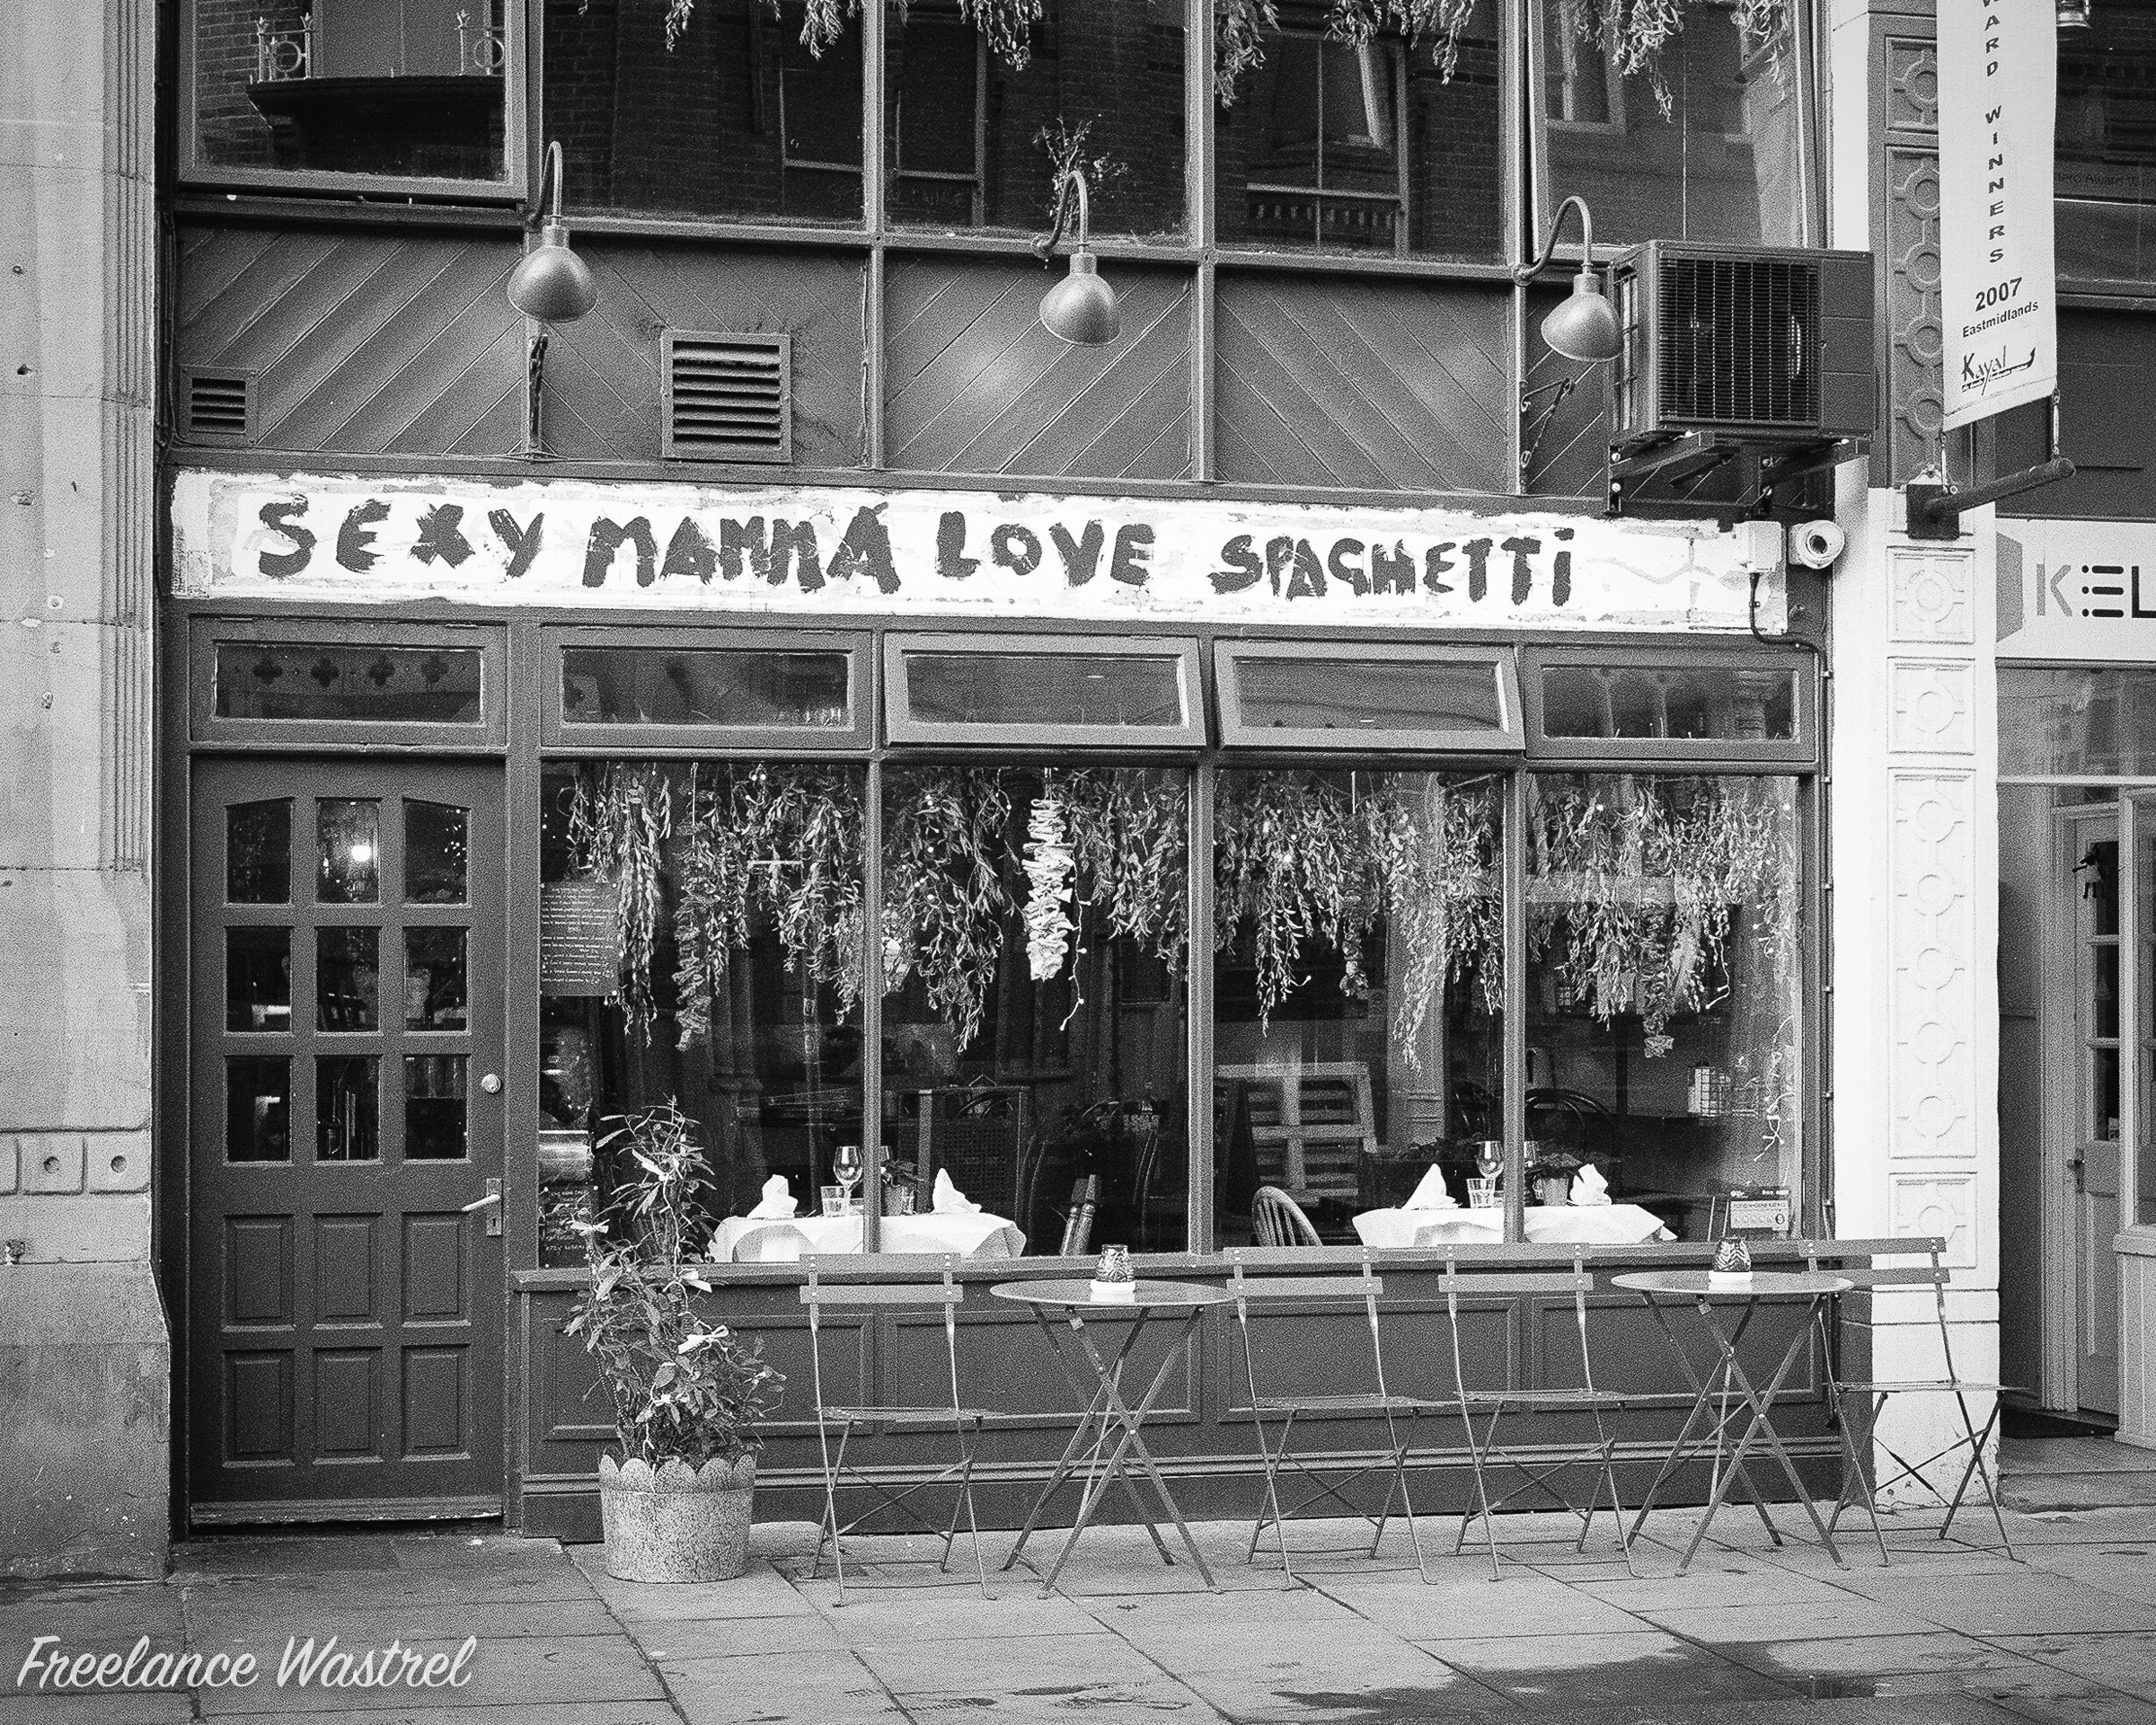 Sexy Mamma Love Spaghetti, Nottingham, December 2017